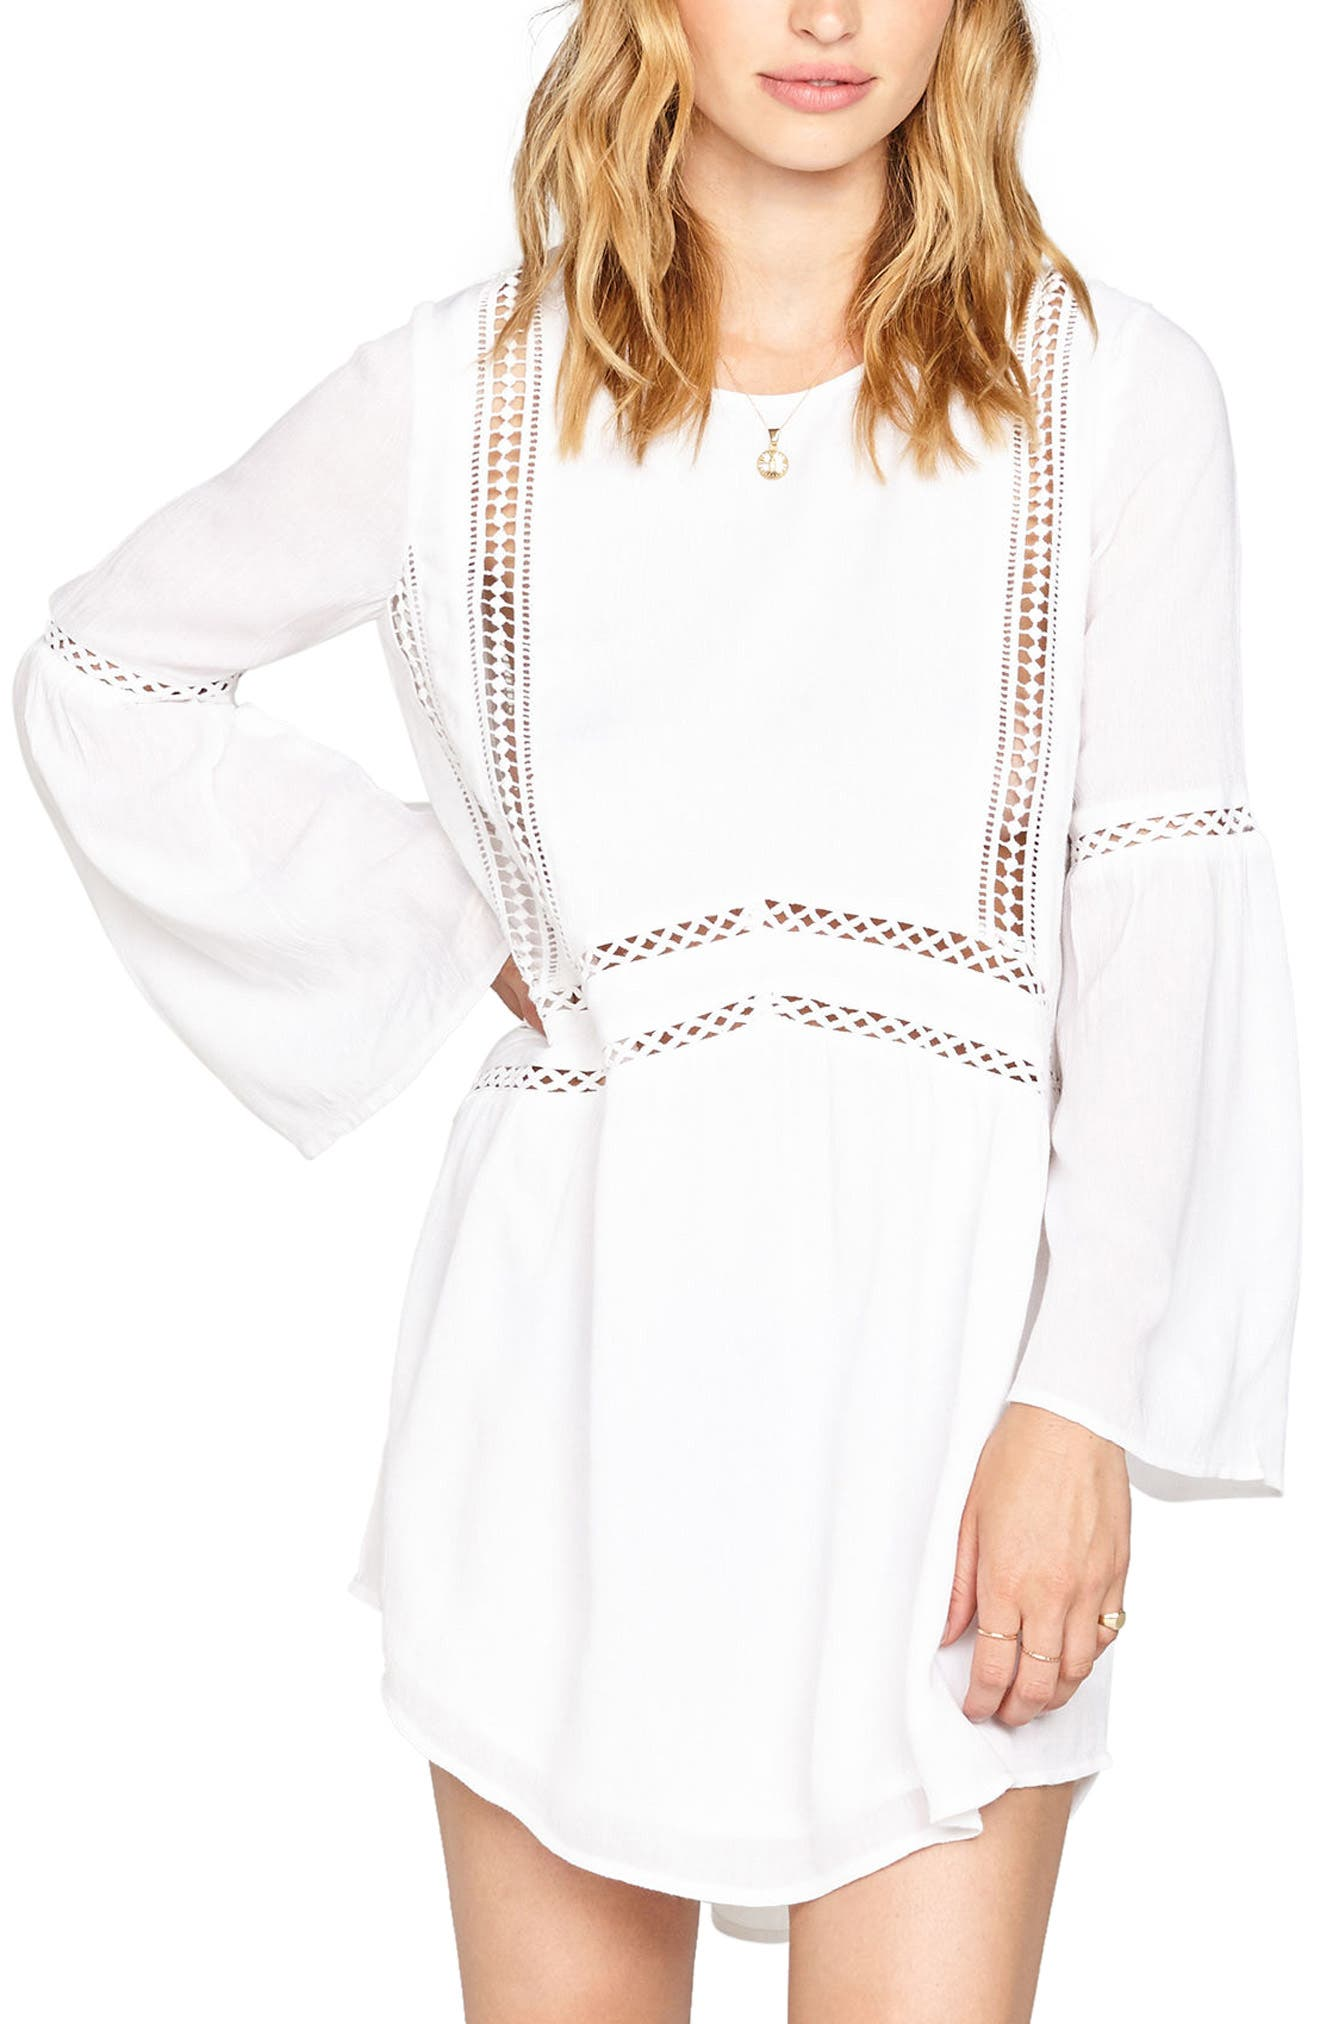 Amuse Society Kensington Crochet Trim Dress